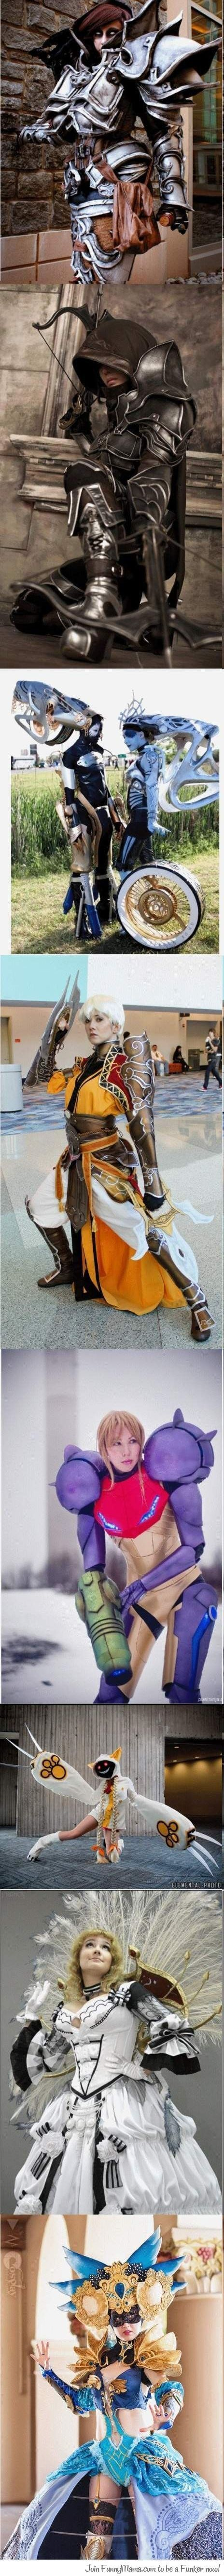 Girls can make awesome cosplay without being naked